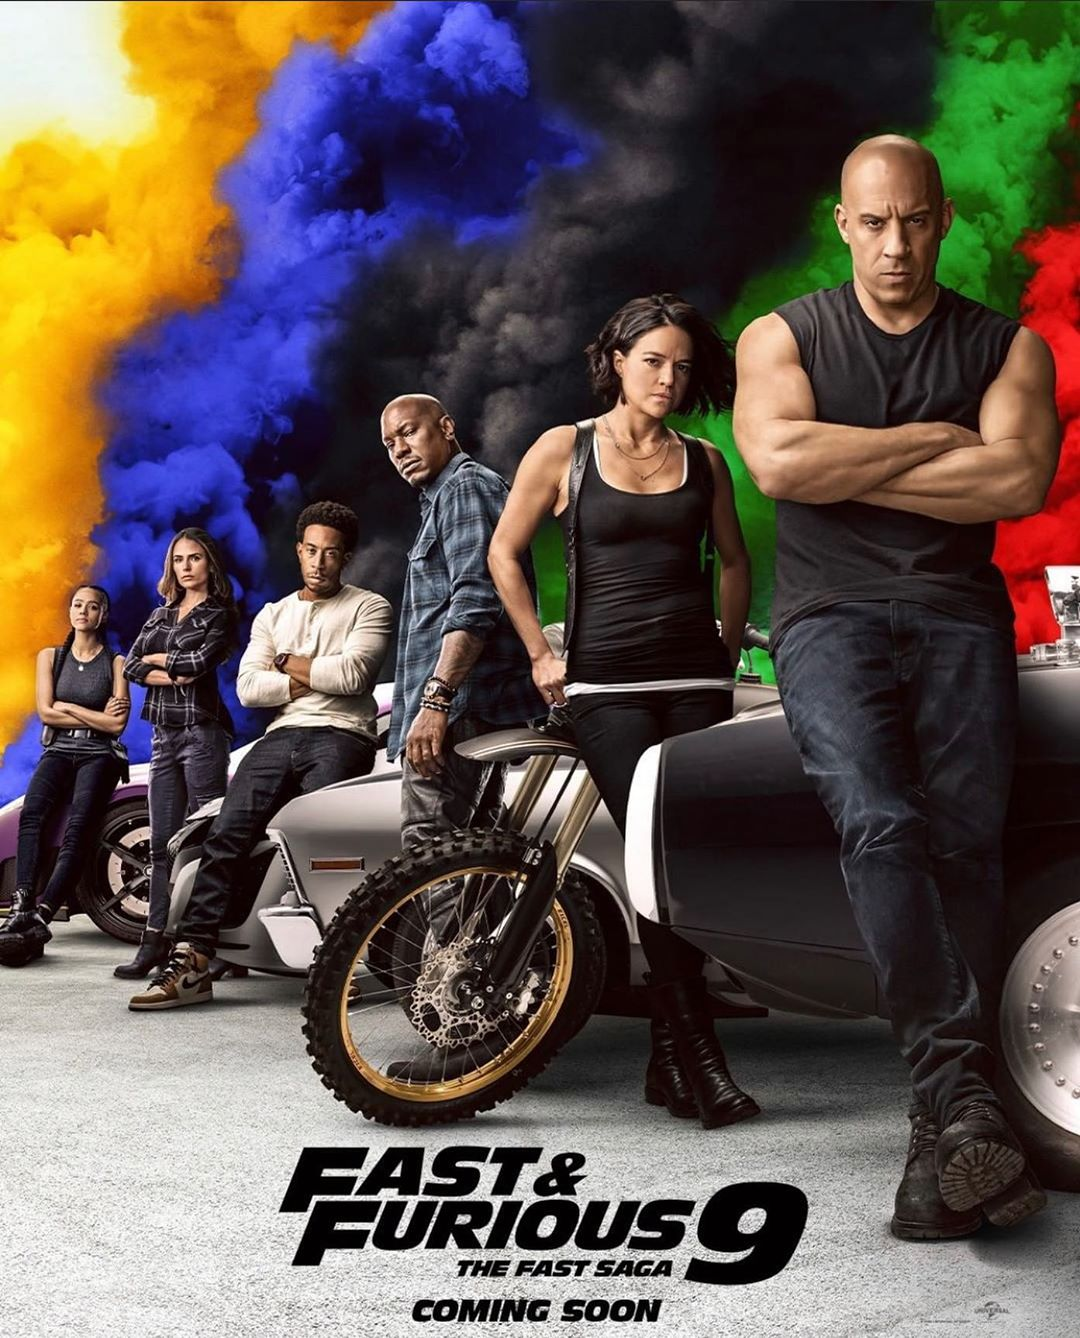 Fast And Furious 9: The Fast Saga (English) Movie: Review   Release Date   Songs   Music   Images   Official Trailers   Videos   Photos   News - Bollywood Hungama